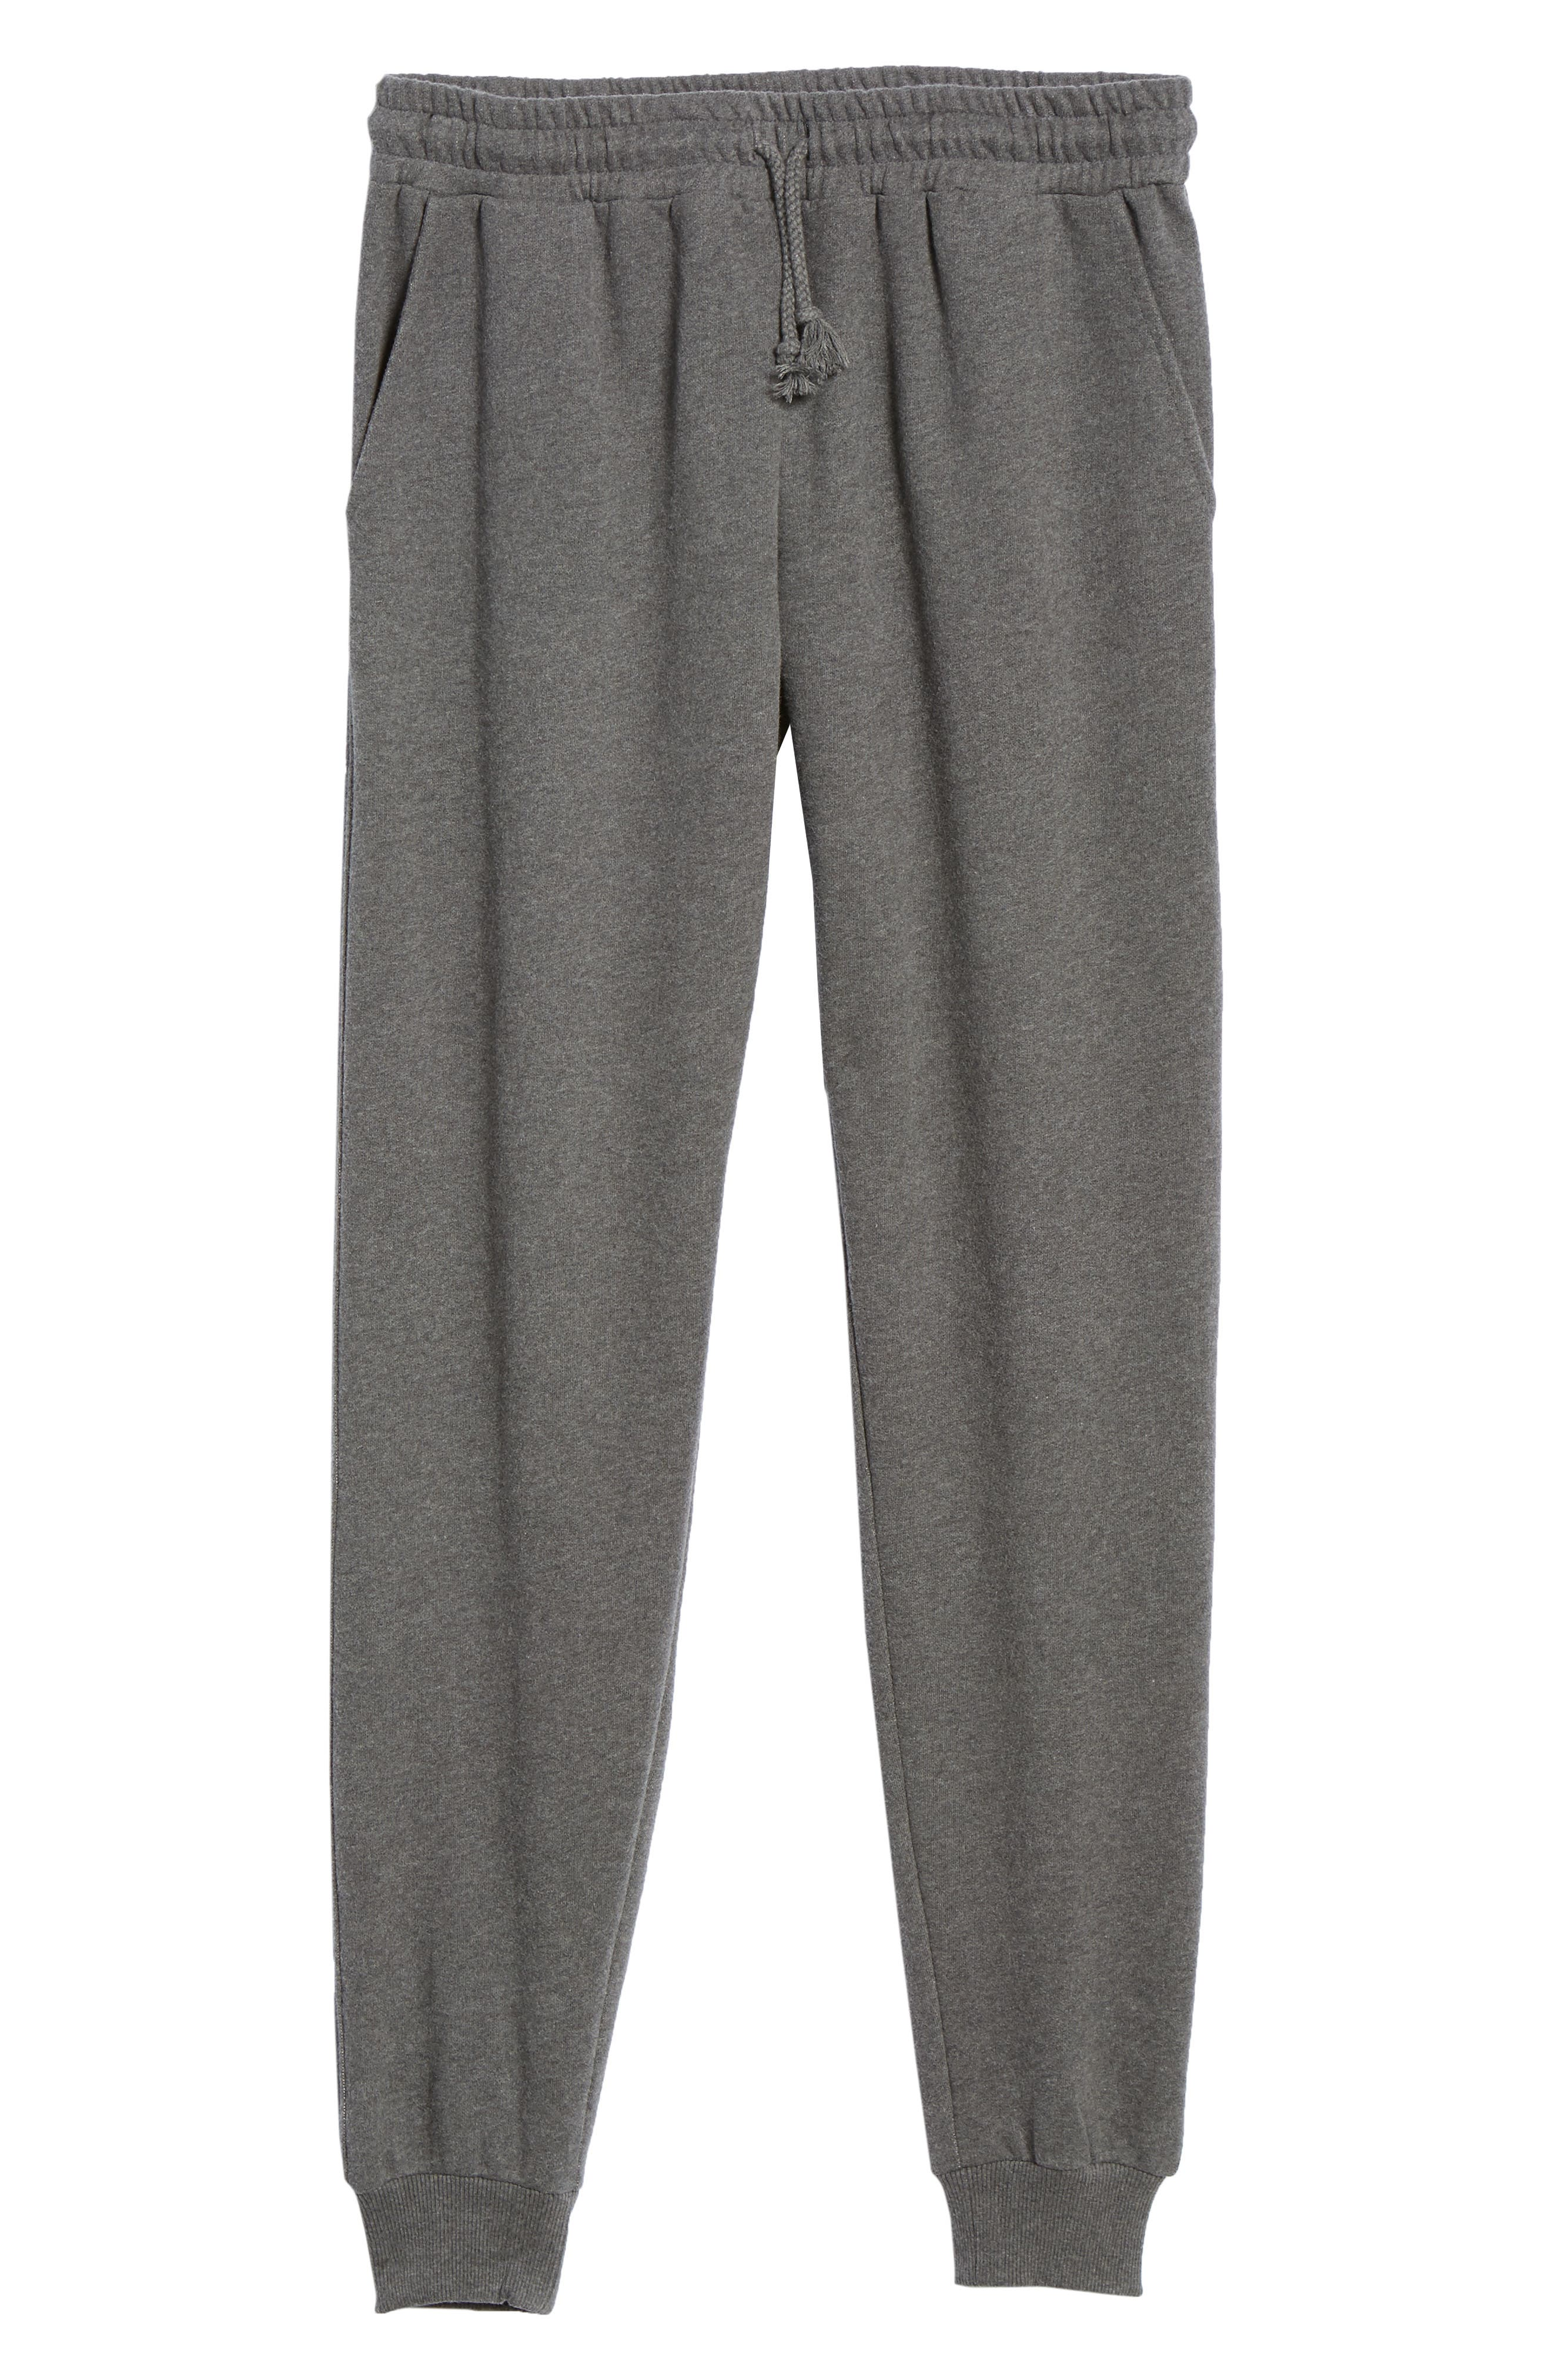 KnowledgeCotton Mélange Sweatpants,                             Alternate thumbnail 6, color,                             GREY MELANGE